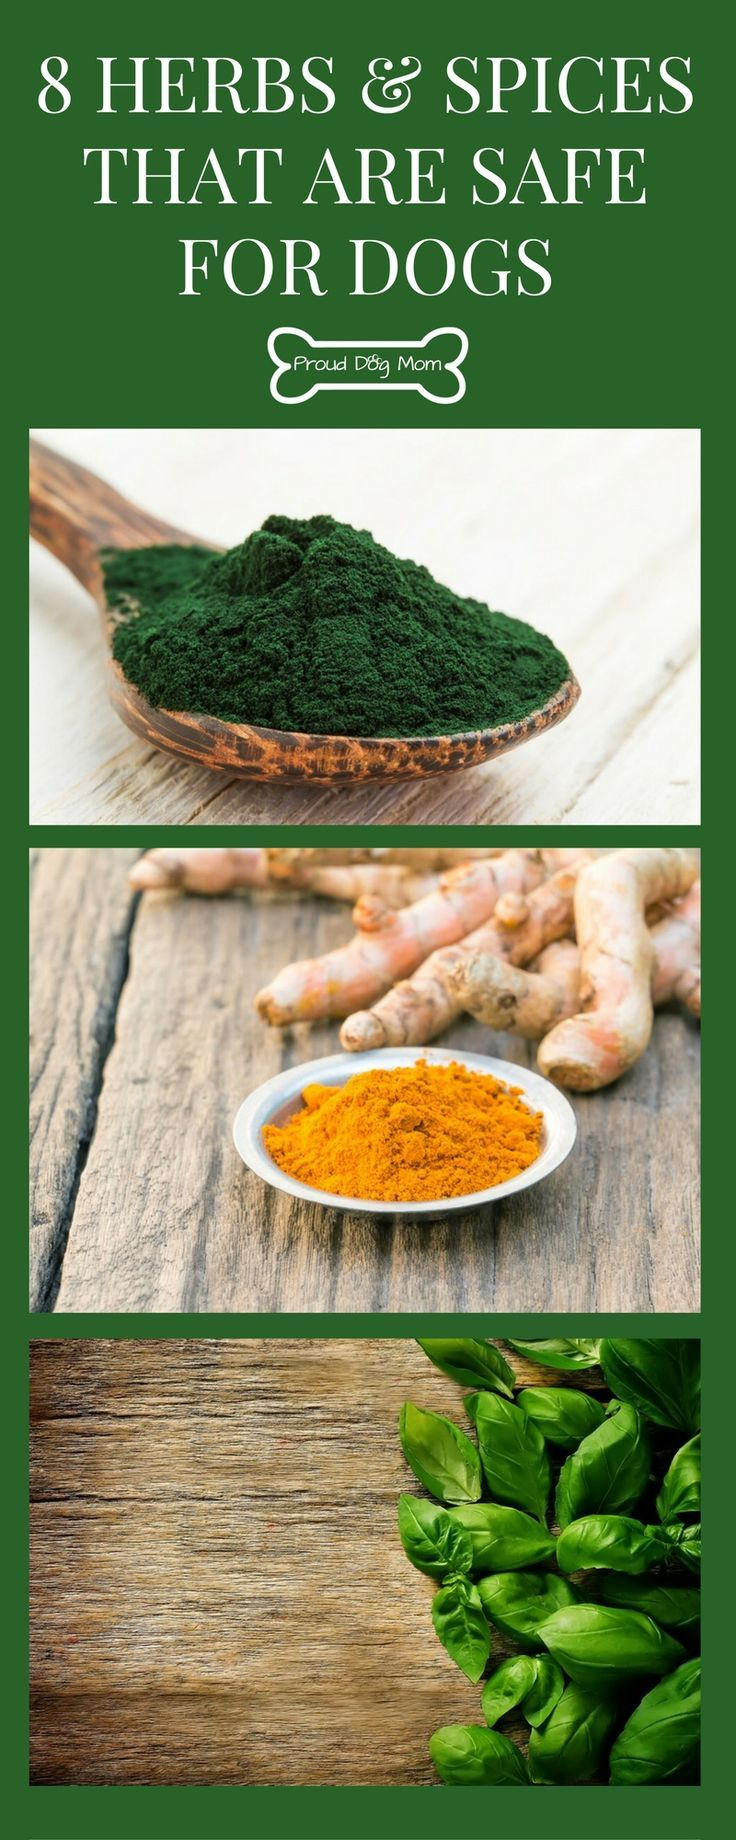 8 Herbs and Spices That Are Safe For Dogs | Dog Health | DIY Dog Food |